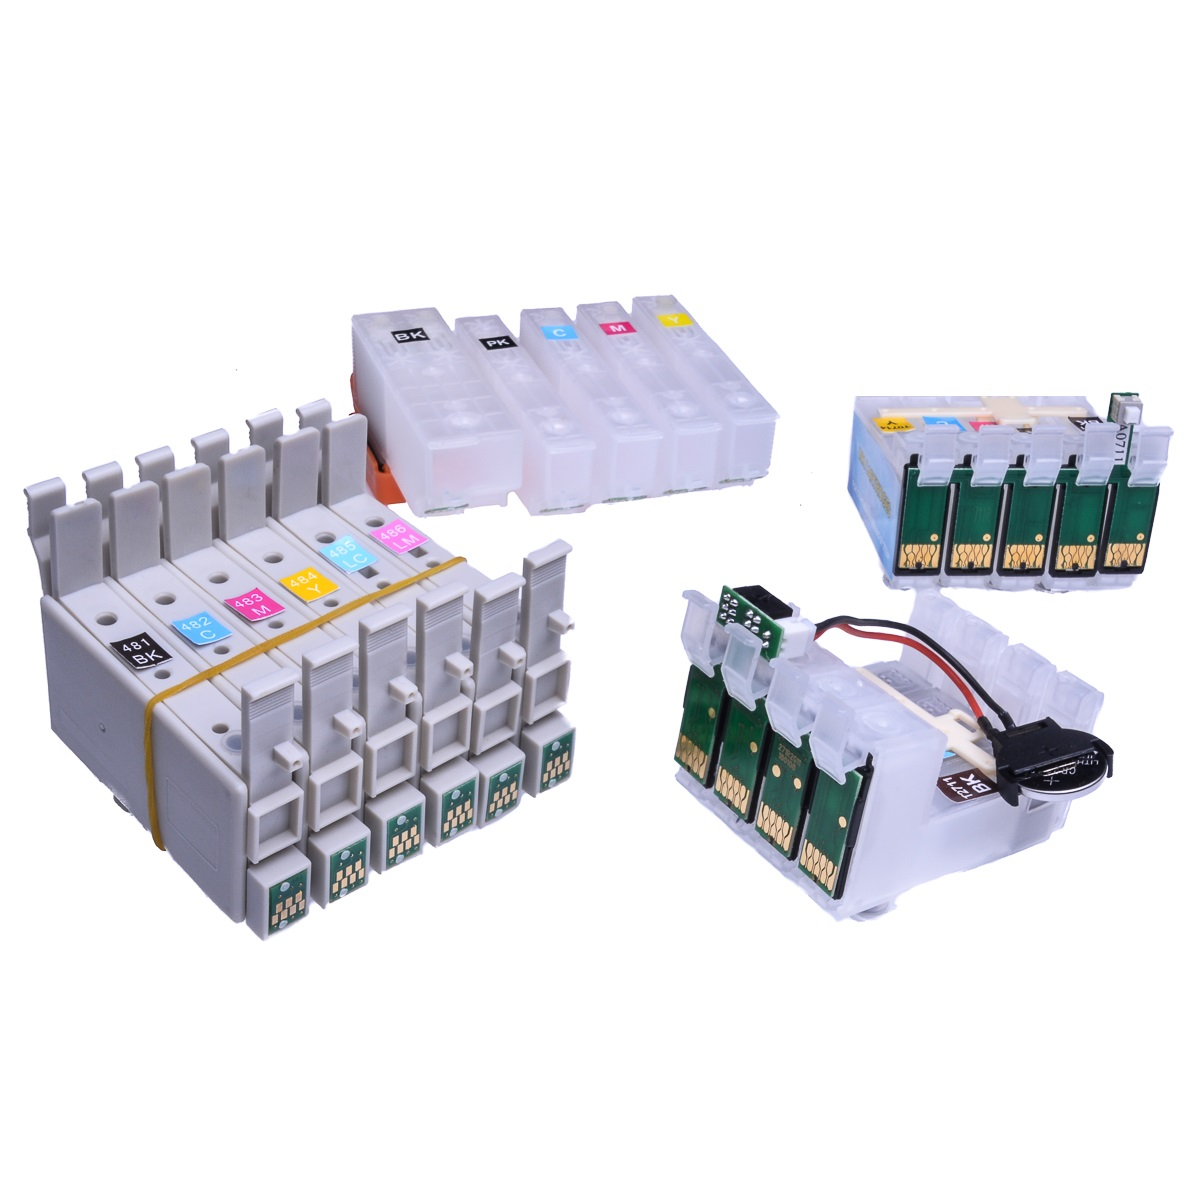 Auto Reset Ink Cartridge fits Epson XP-245 Continuous Ink Systems